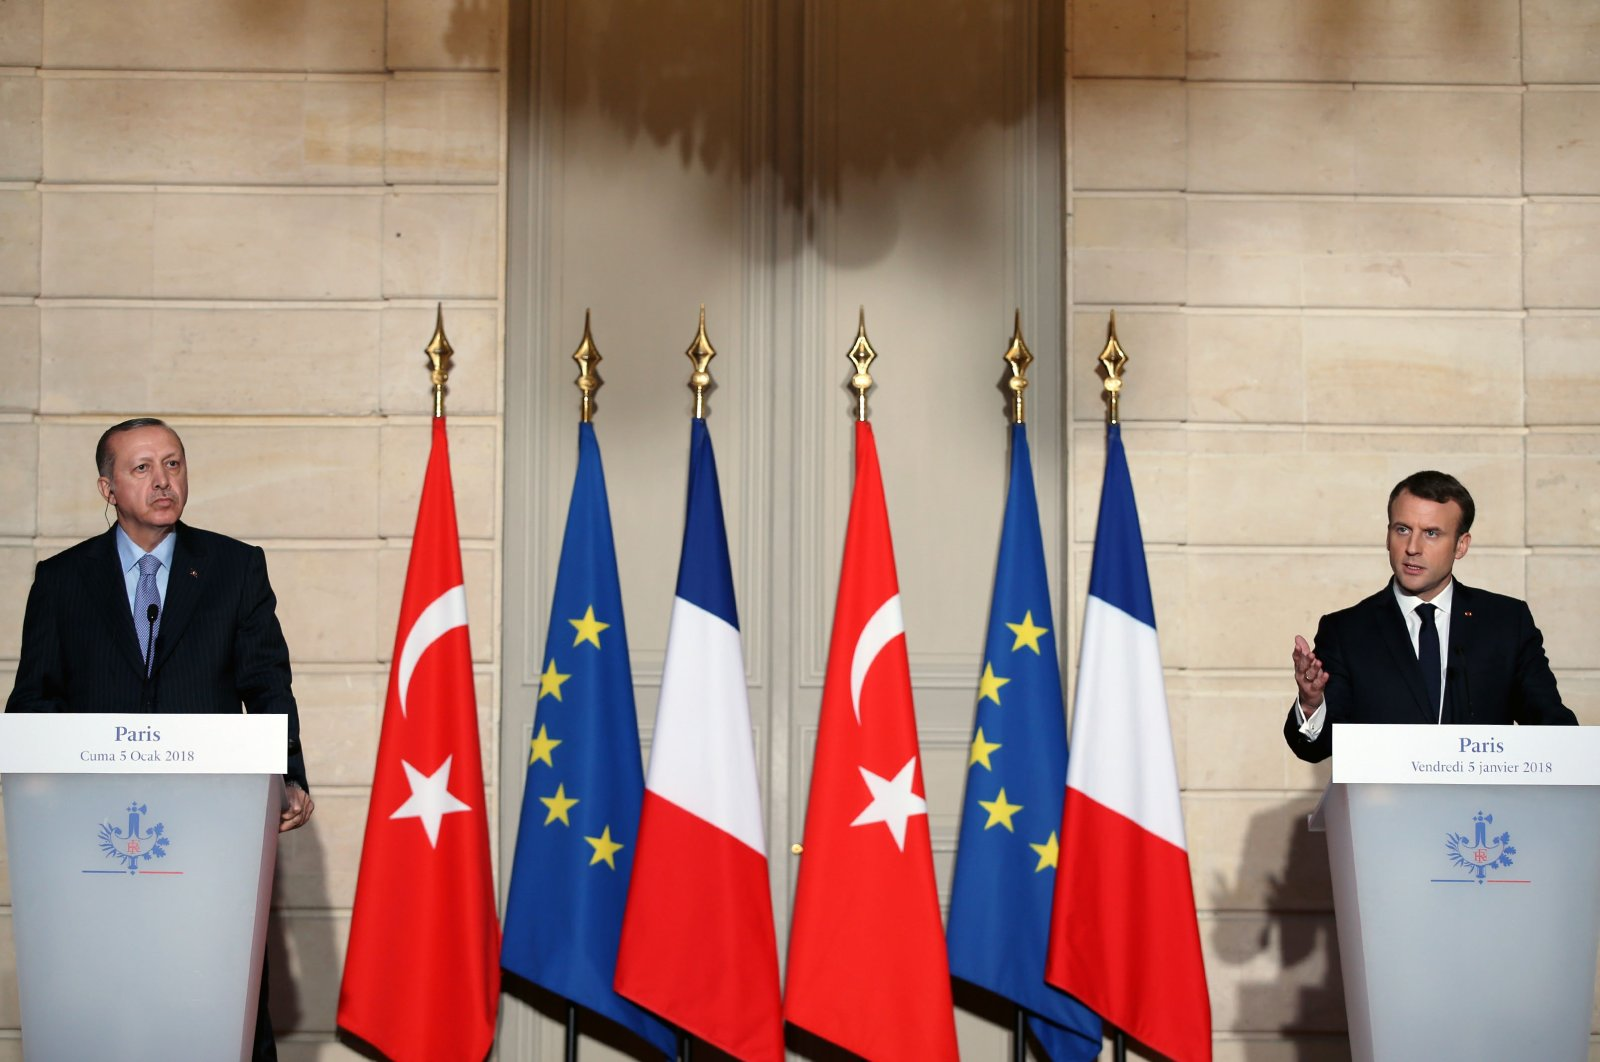 Turkish President Recep Tayyip Erdoğan (L) and French President Emmanuel Macron attend a joint news conference after a meeting in Paris, France, Jan. 5, 2018. (AA File Photo)